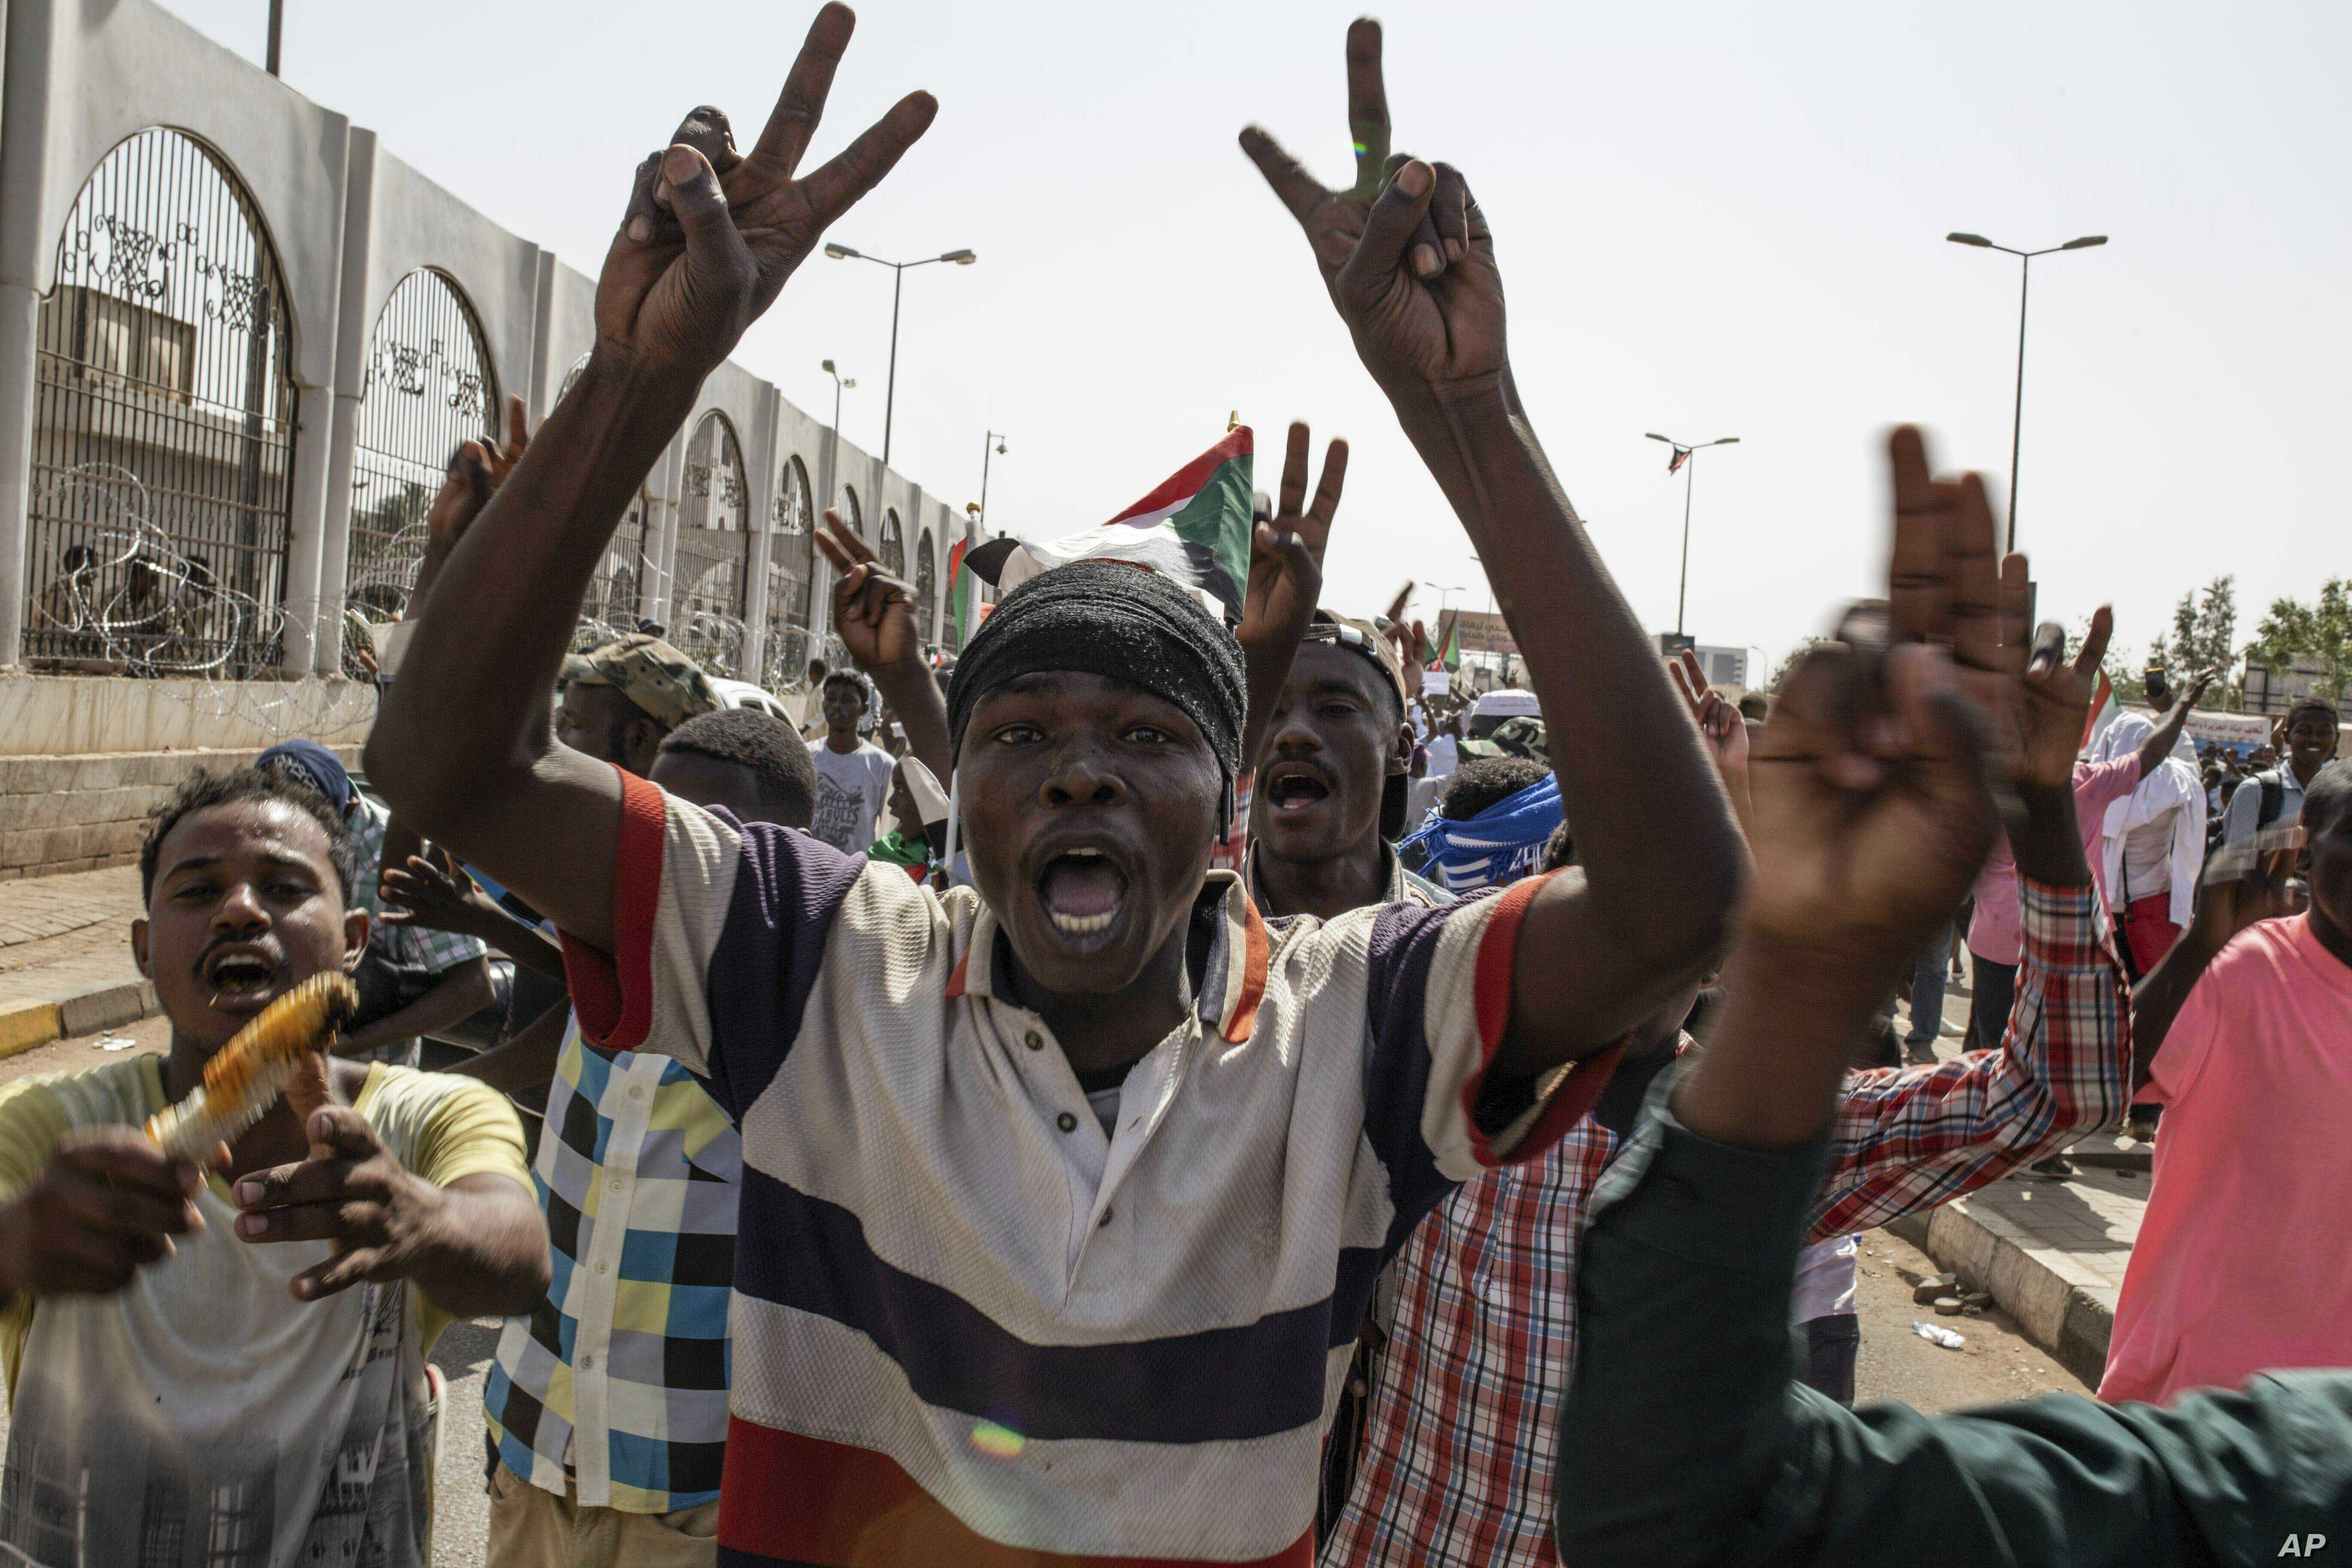 A group of protesters chant revolutionary slogans against military rule at the sit-in outside the military headquarters, in Khartoum, Sudan, Thursday, May 2, 2019.